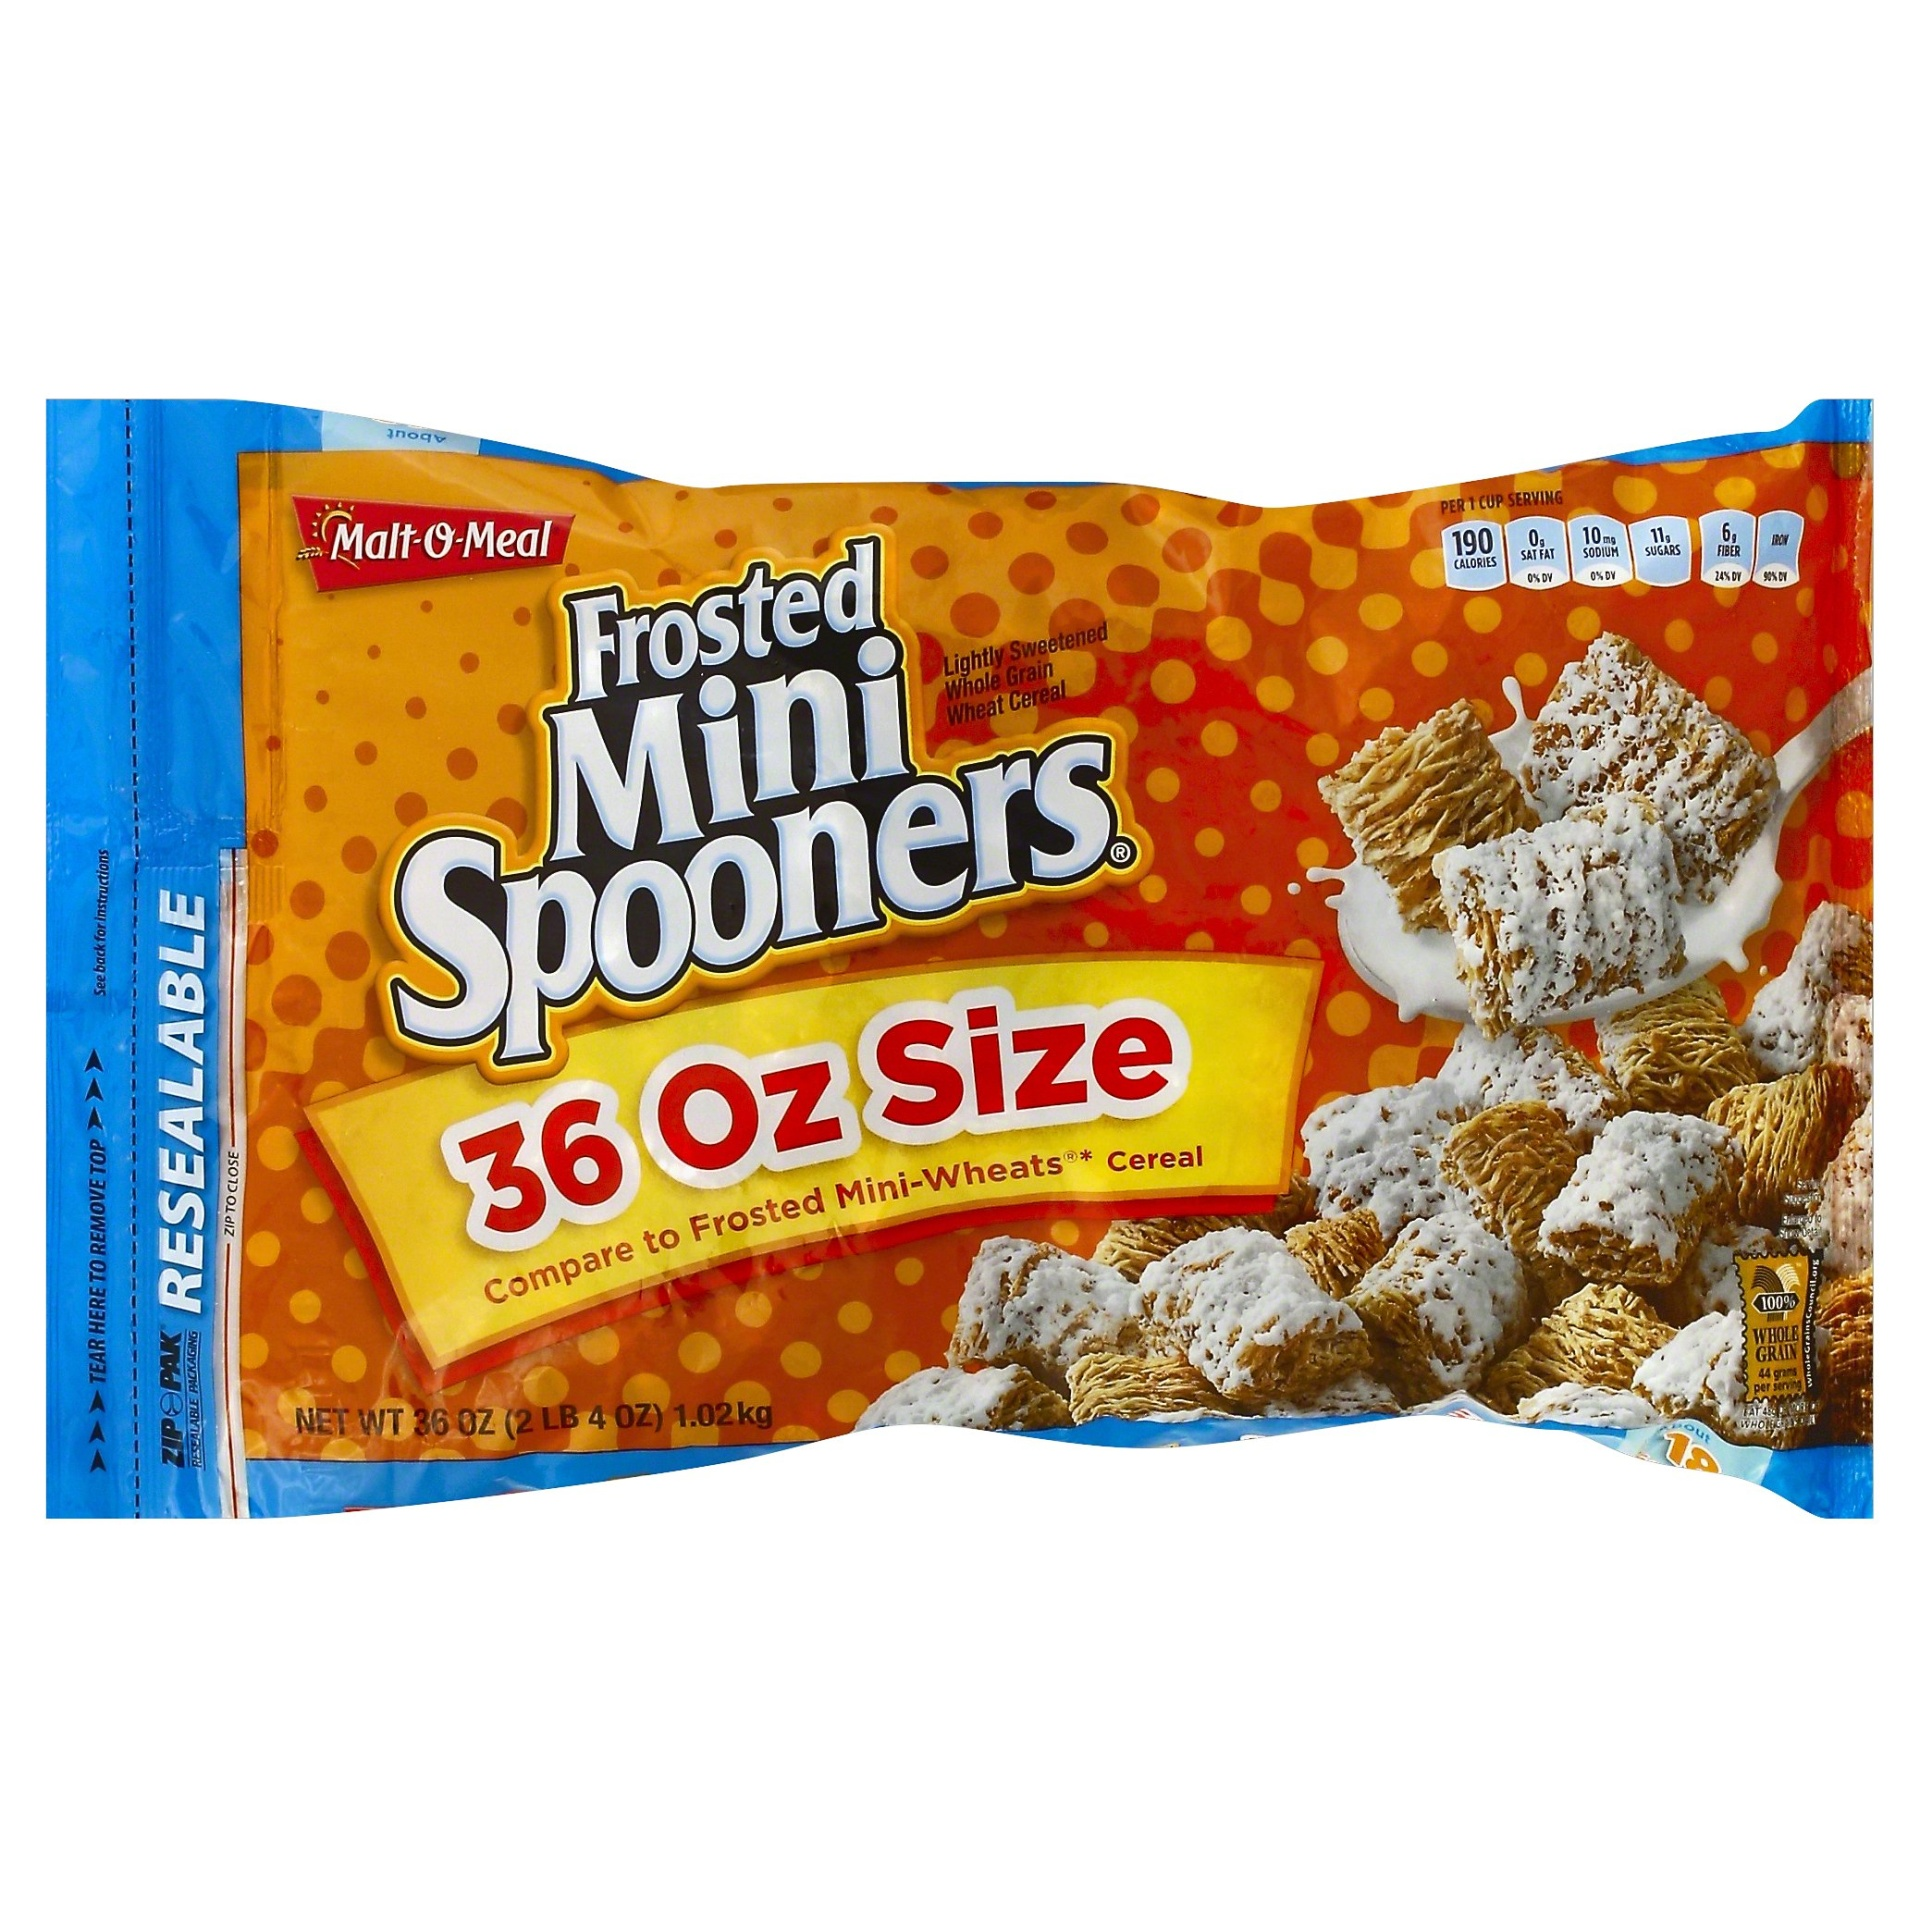 slide 1 of 4, Malt-O-Meal Frosted Mini Spooners,